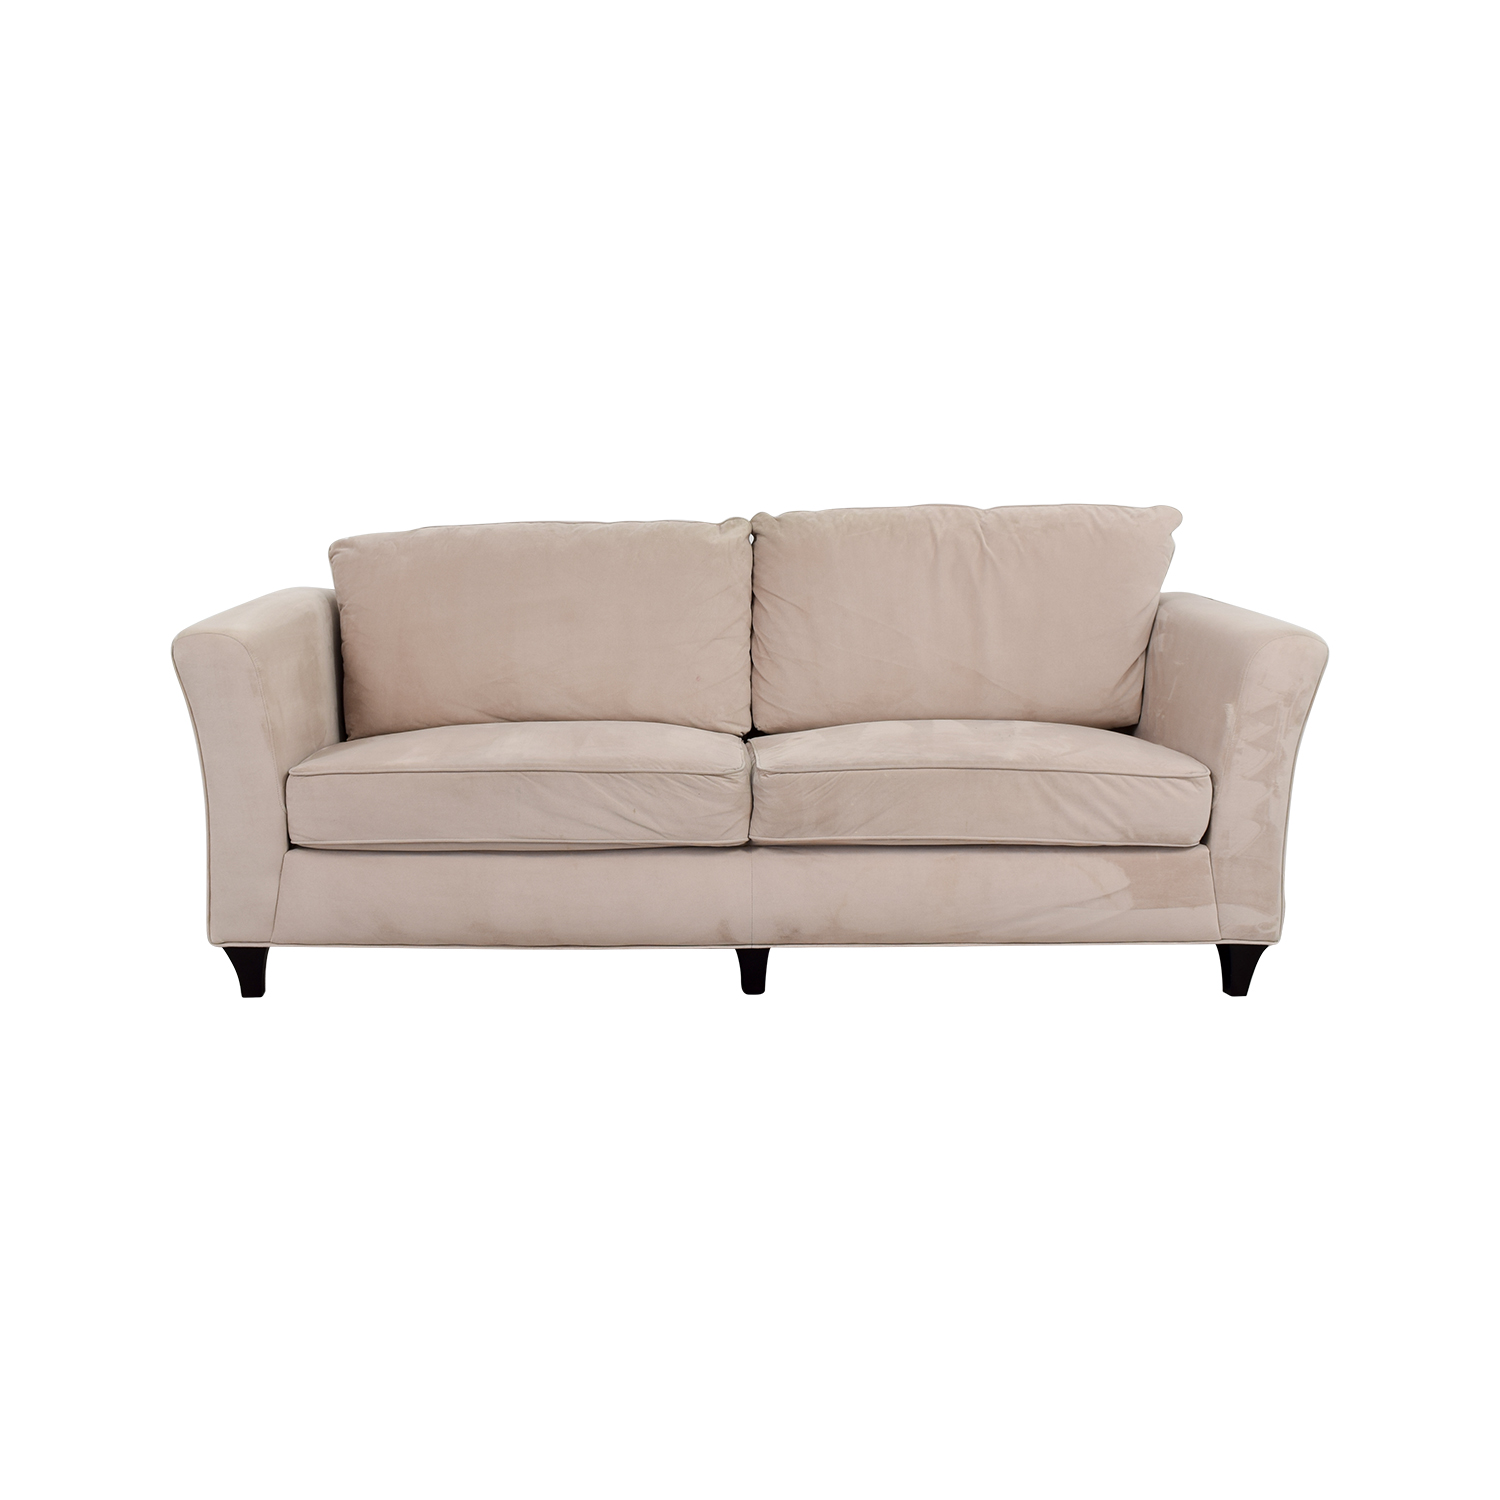 Coaster Coaster Contemporary Beige Sofa second hand